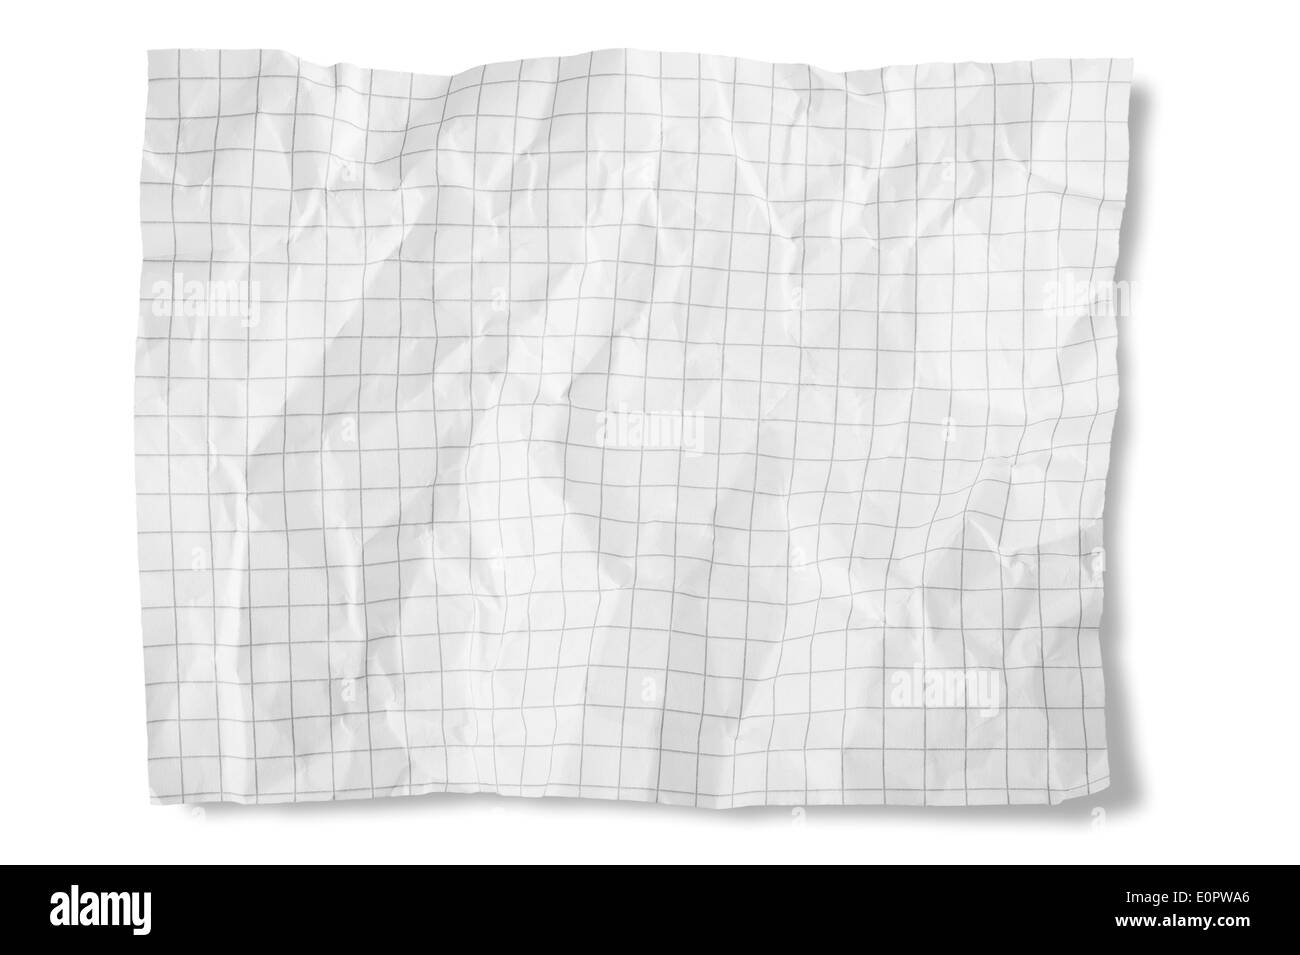 Paper Crumpled isolated on white - Stock Image